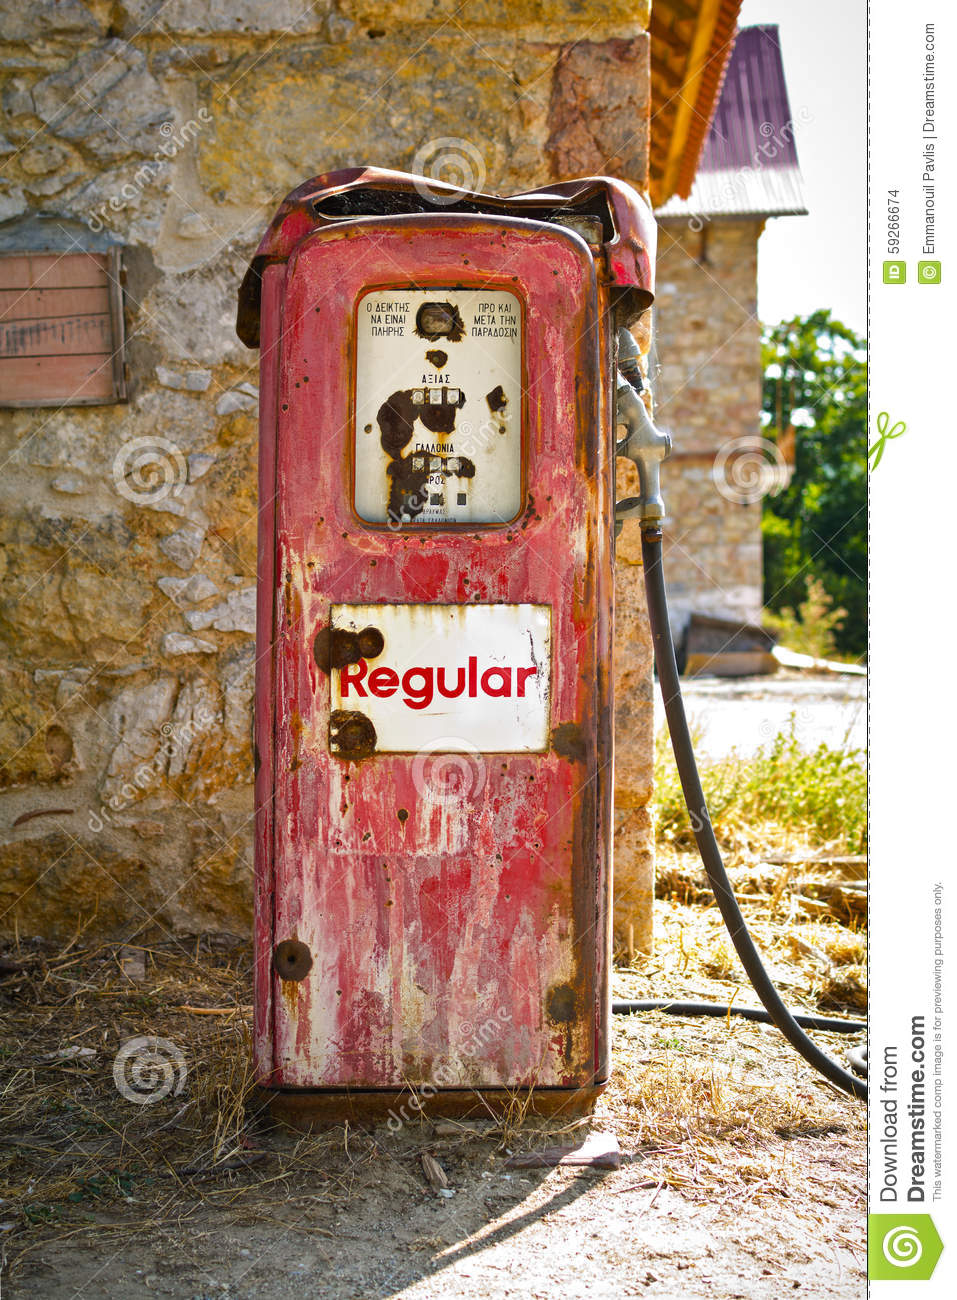 Old gas pump stock photo  Image of gauge, count, gallon - 59266674